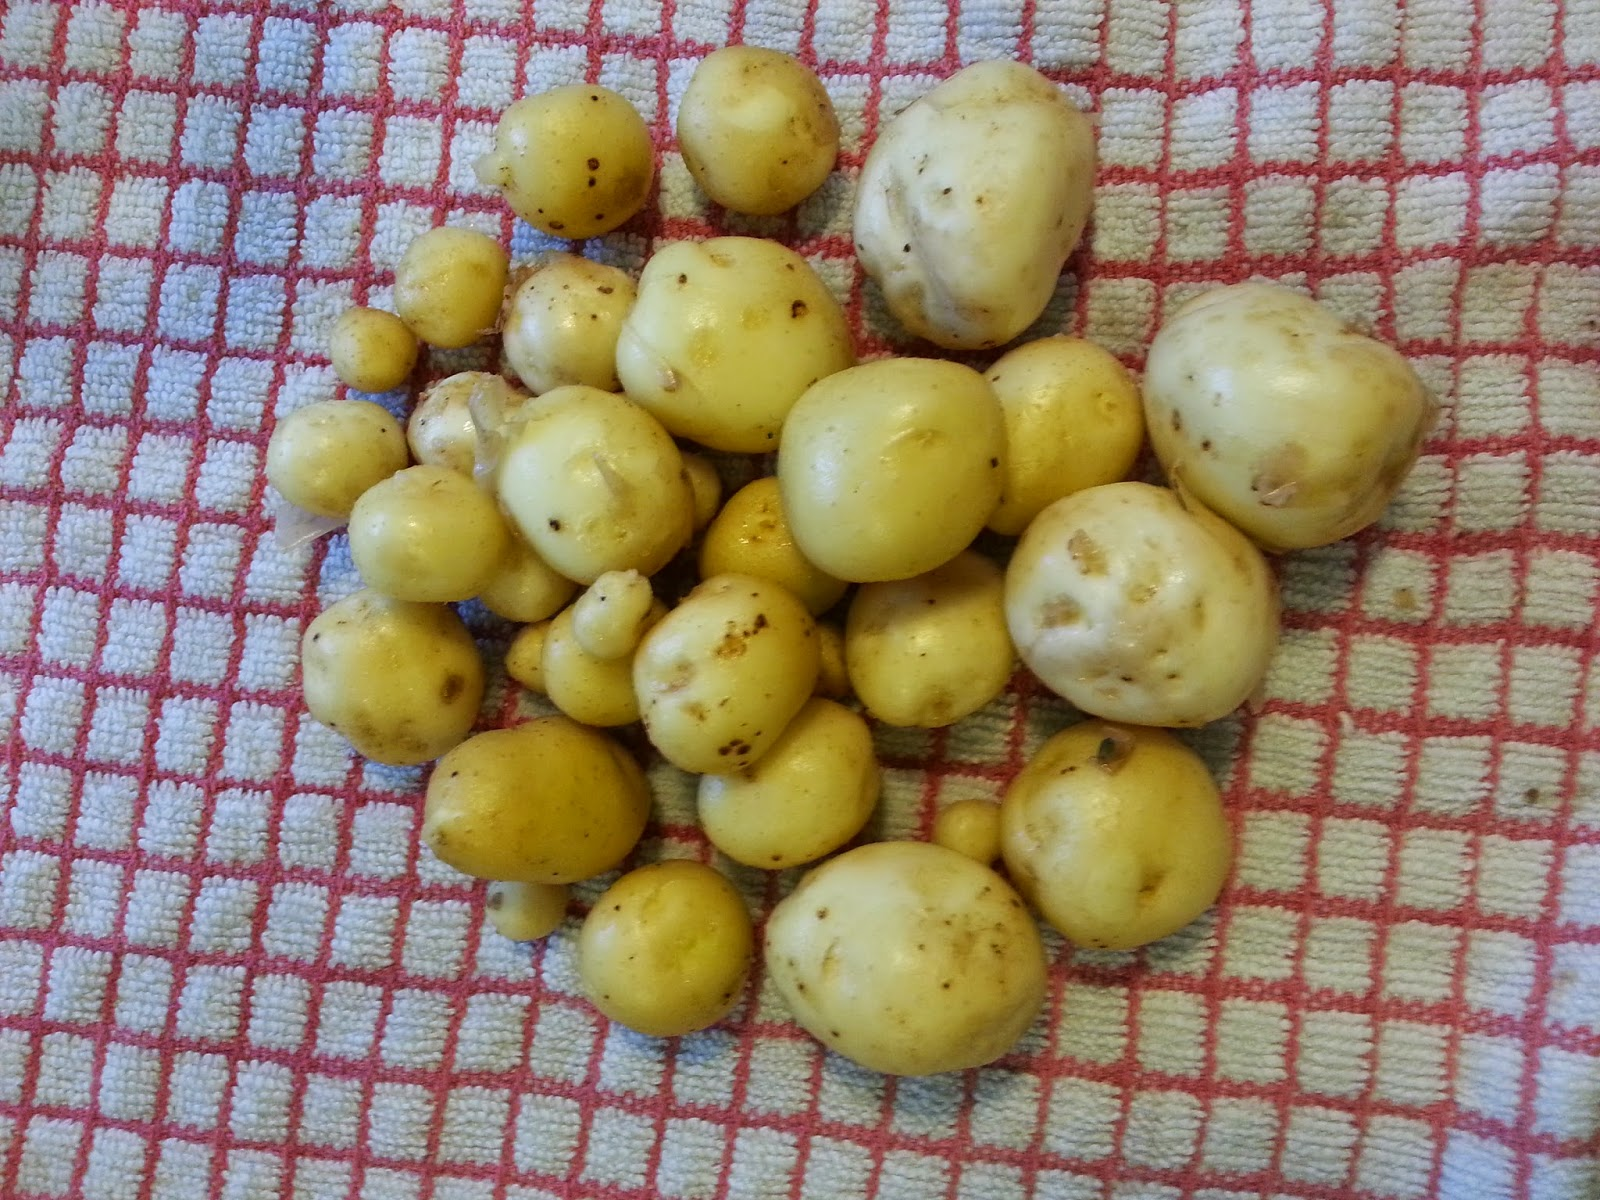 Freshly dug new potatoes on red and white check tablecloth